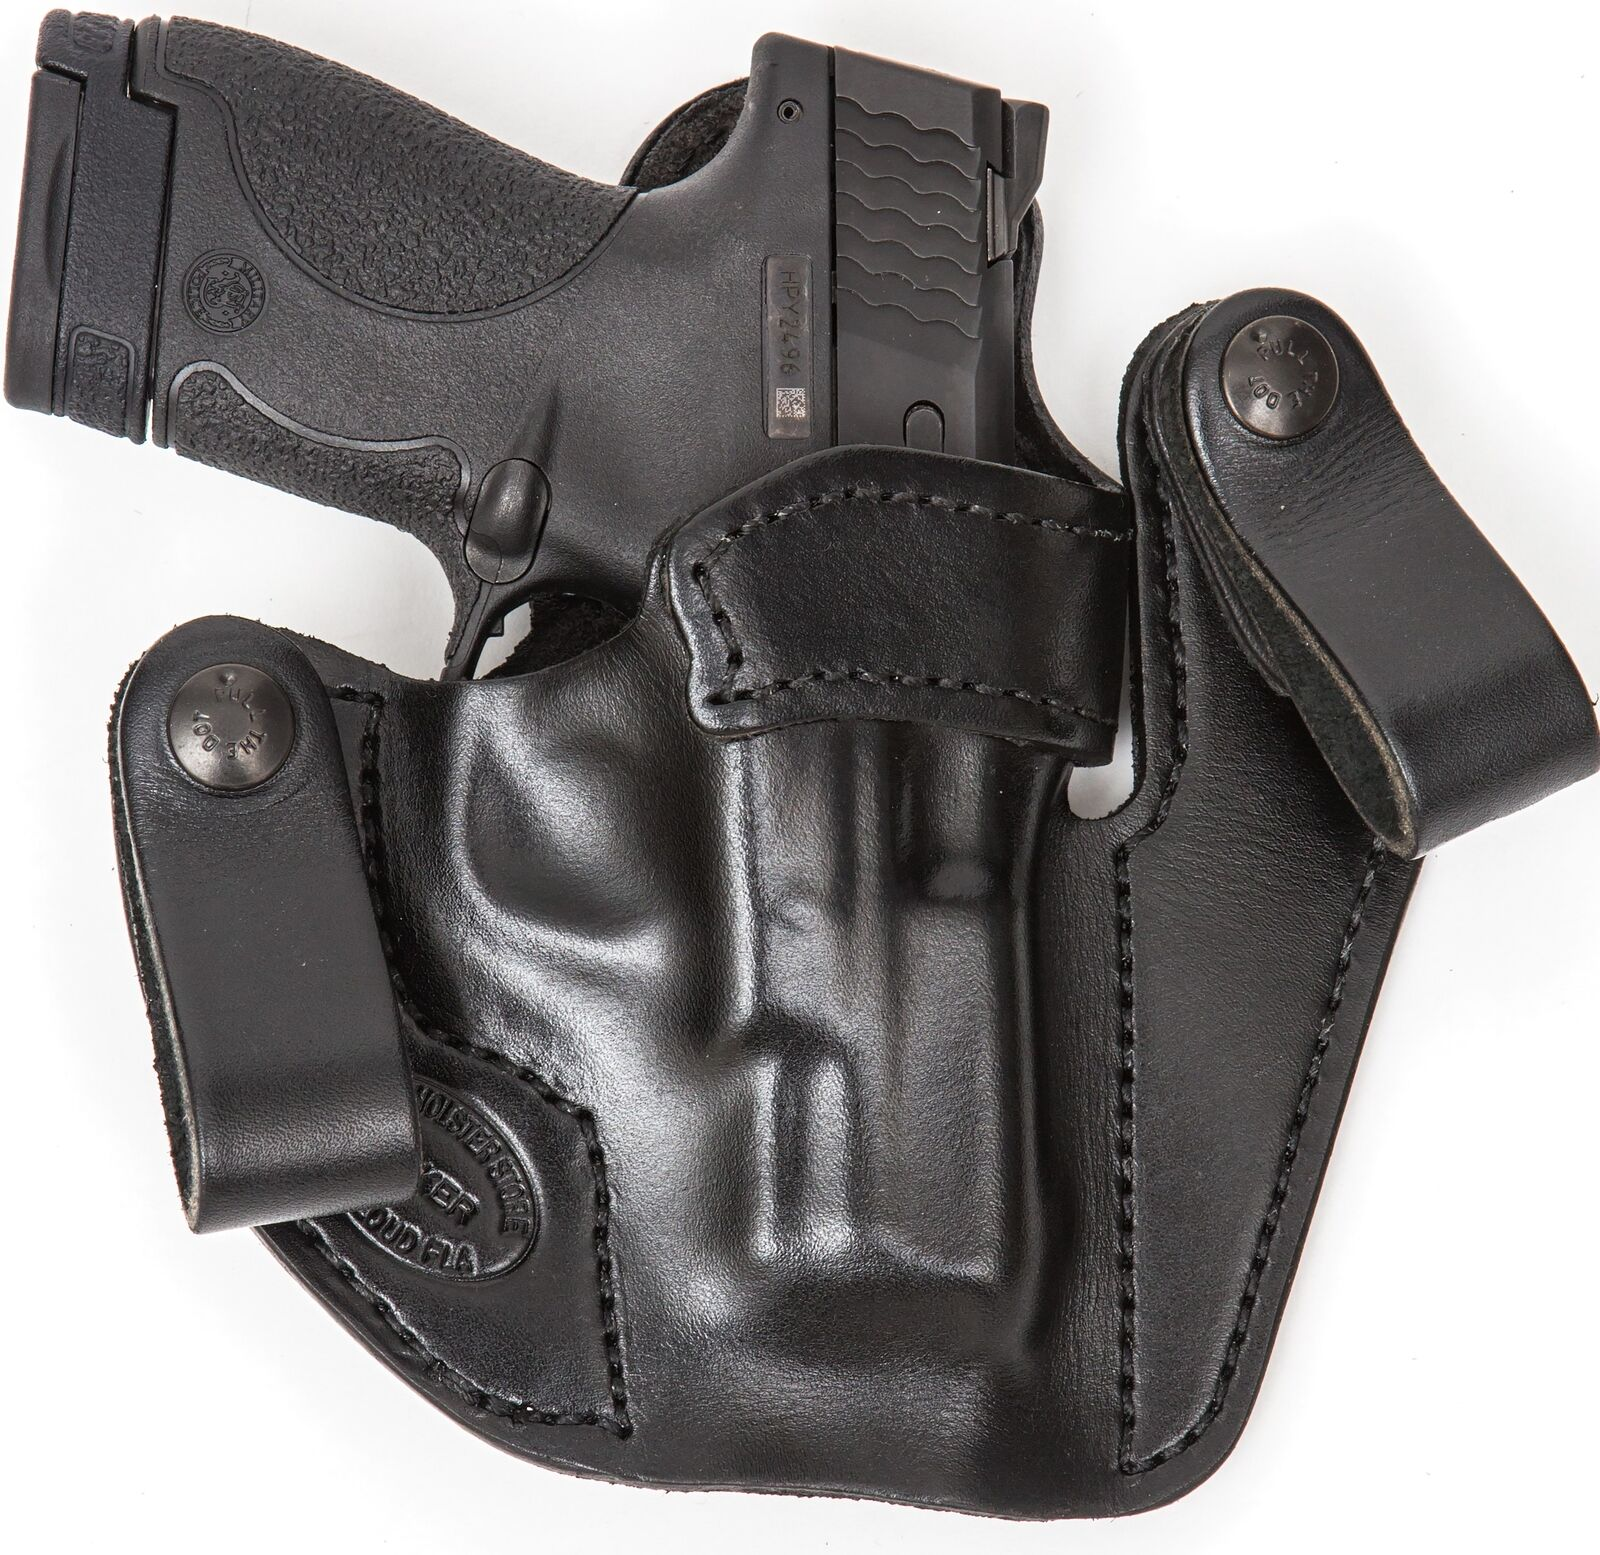 XTREME CARRY P01 RH LH IWB Leder Gun Holster For CZ P01 CARRY Compact 7f6e30